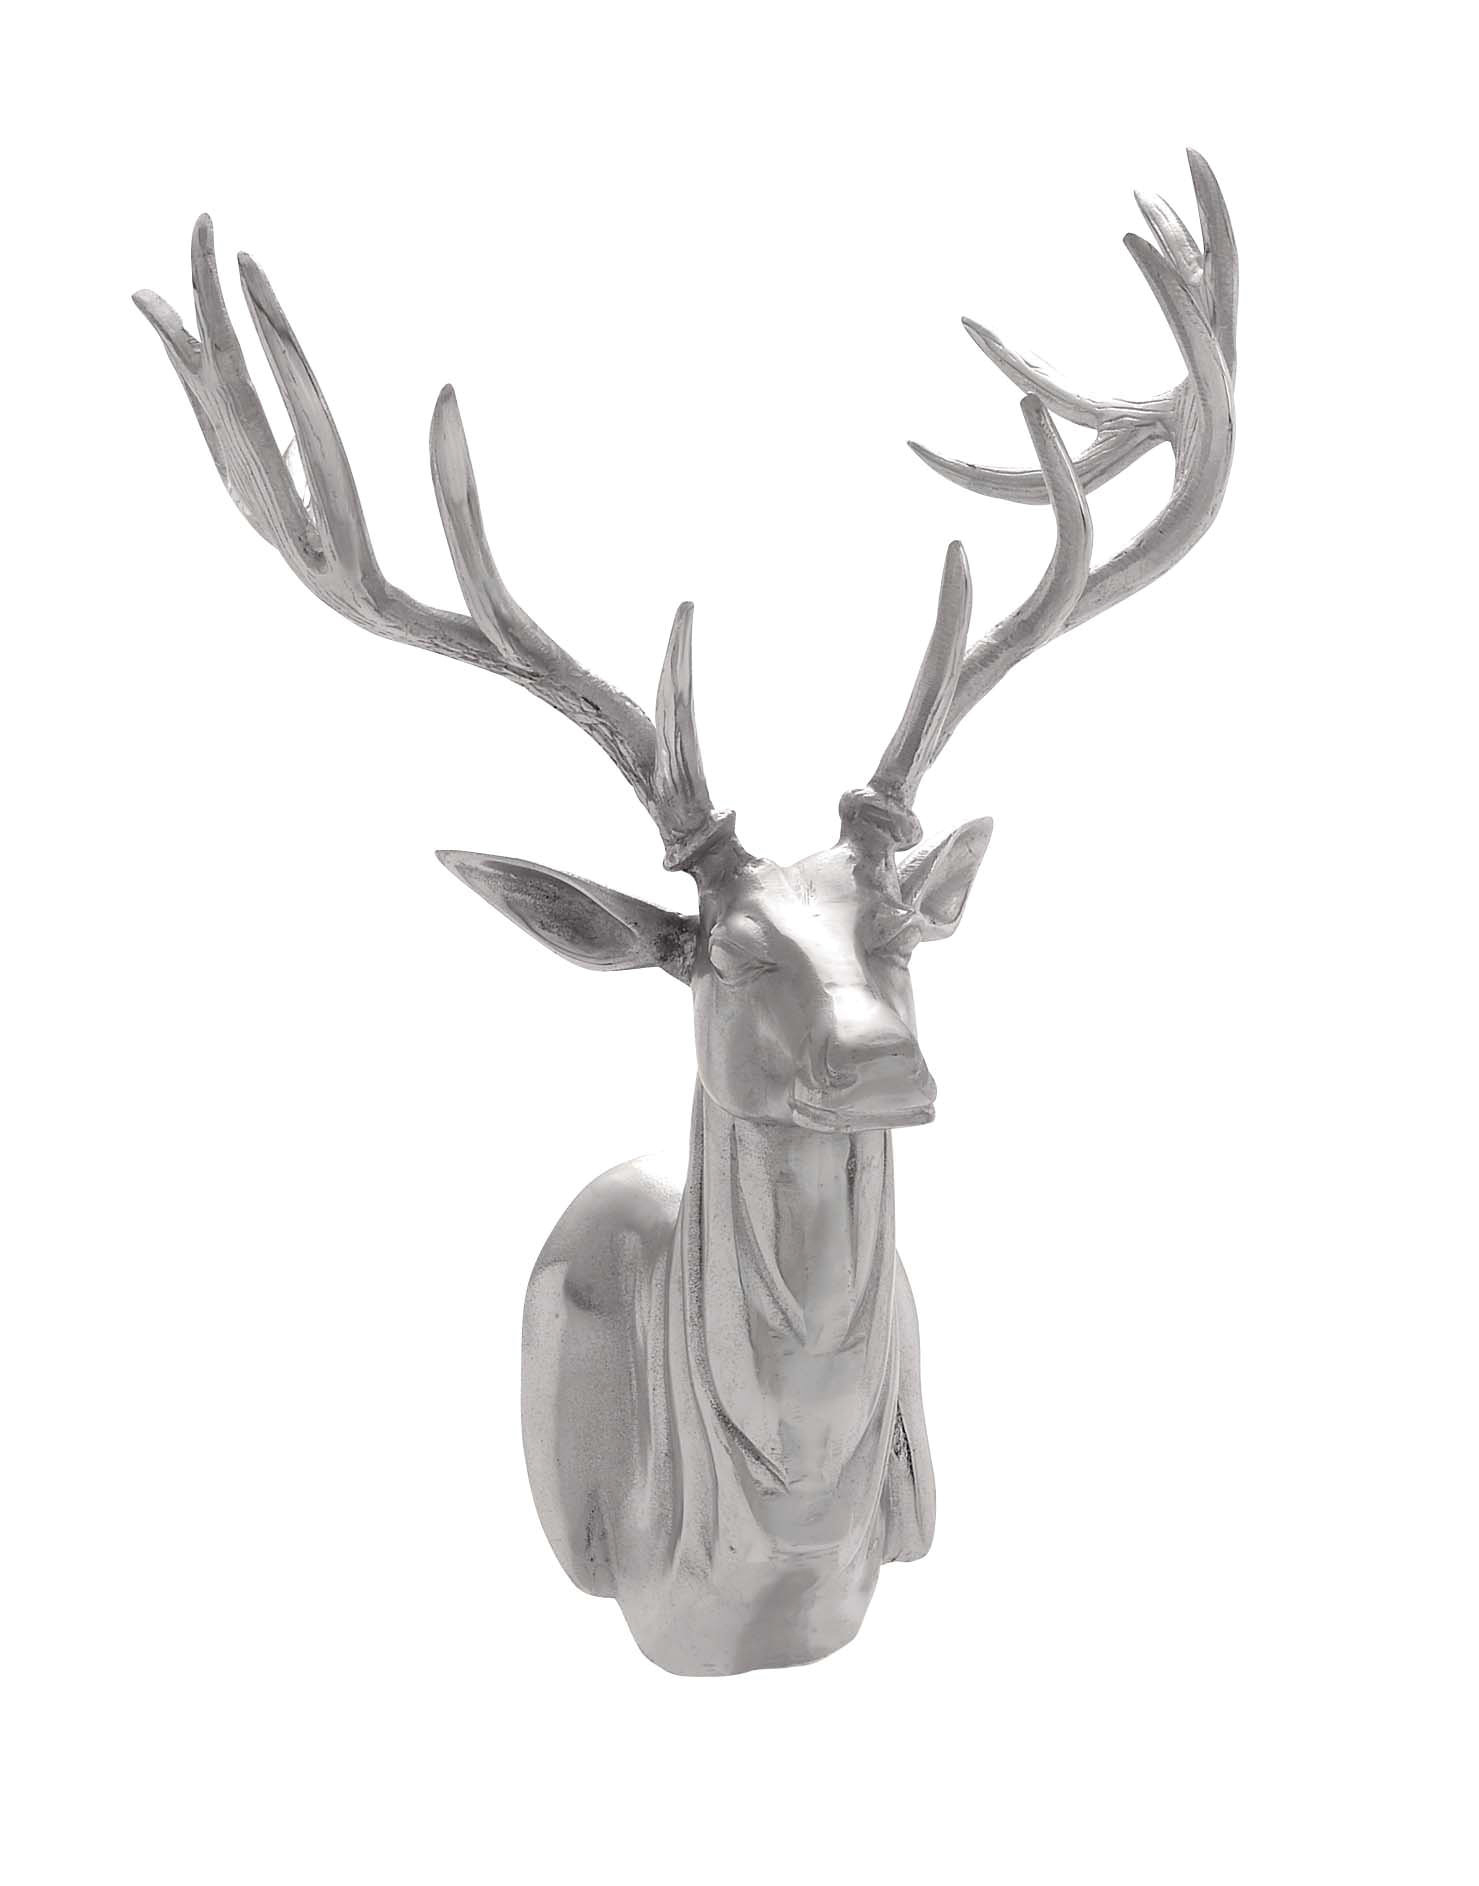 Aluminum Trophy Head Wall Décor Intended For Highlands Ranch The Templeton Wall Decor (View 8 of 30)